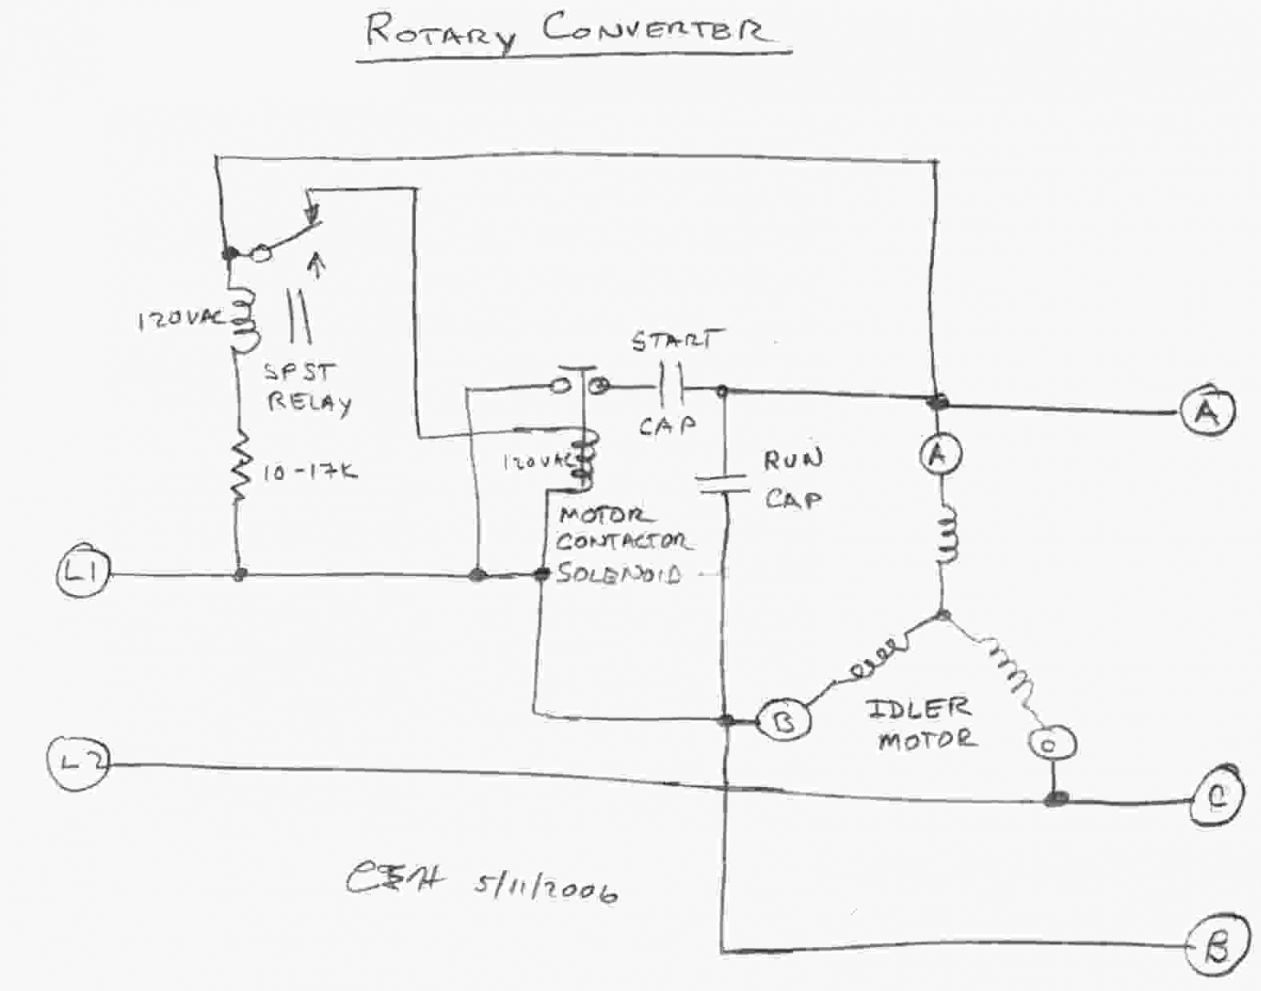 rotary phase converter wiring diagram Download-Elegant Single Phase Motor Wiring Diagram With Capacitor Unique Single Phase Single Phase To 3 Phase 1-r